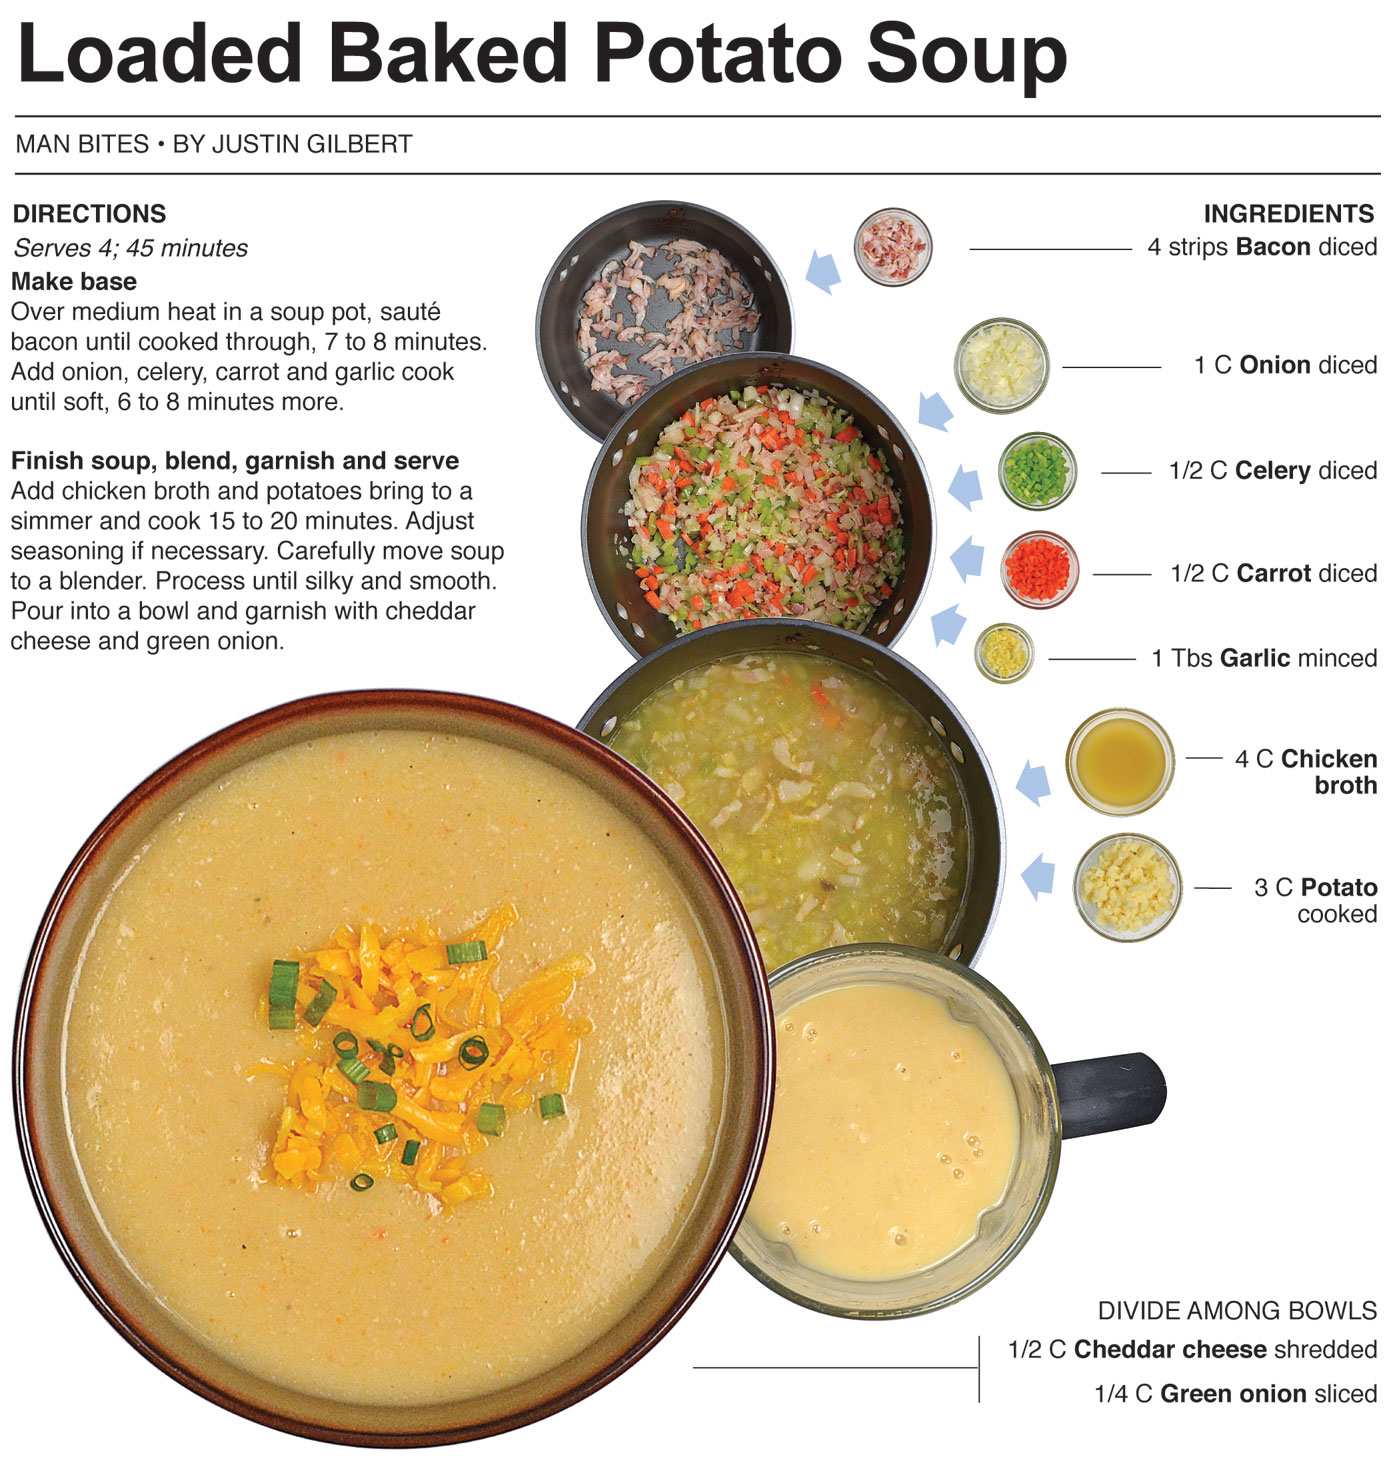 Behind the Bites: Loaded Baked Potato Soup